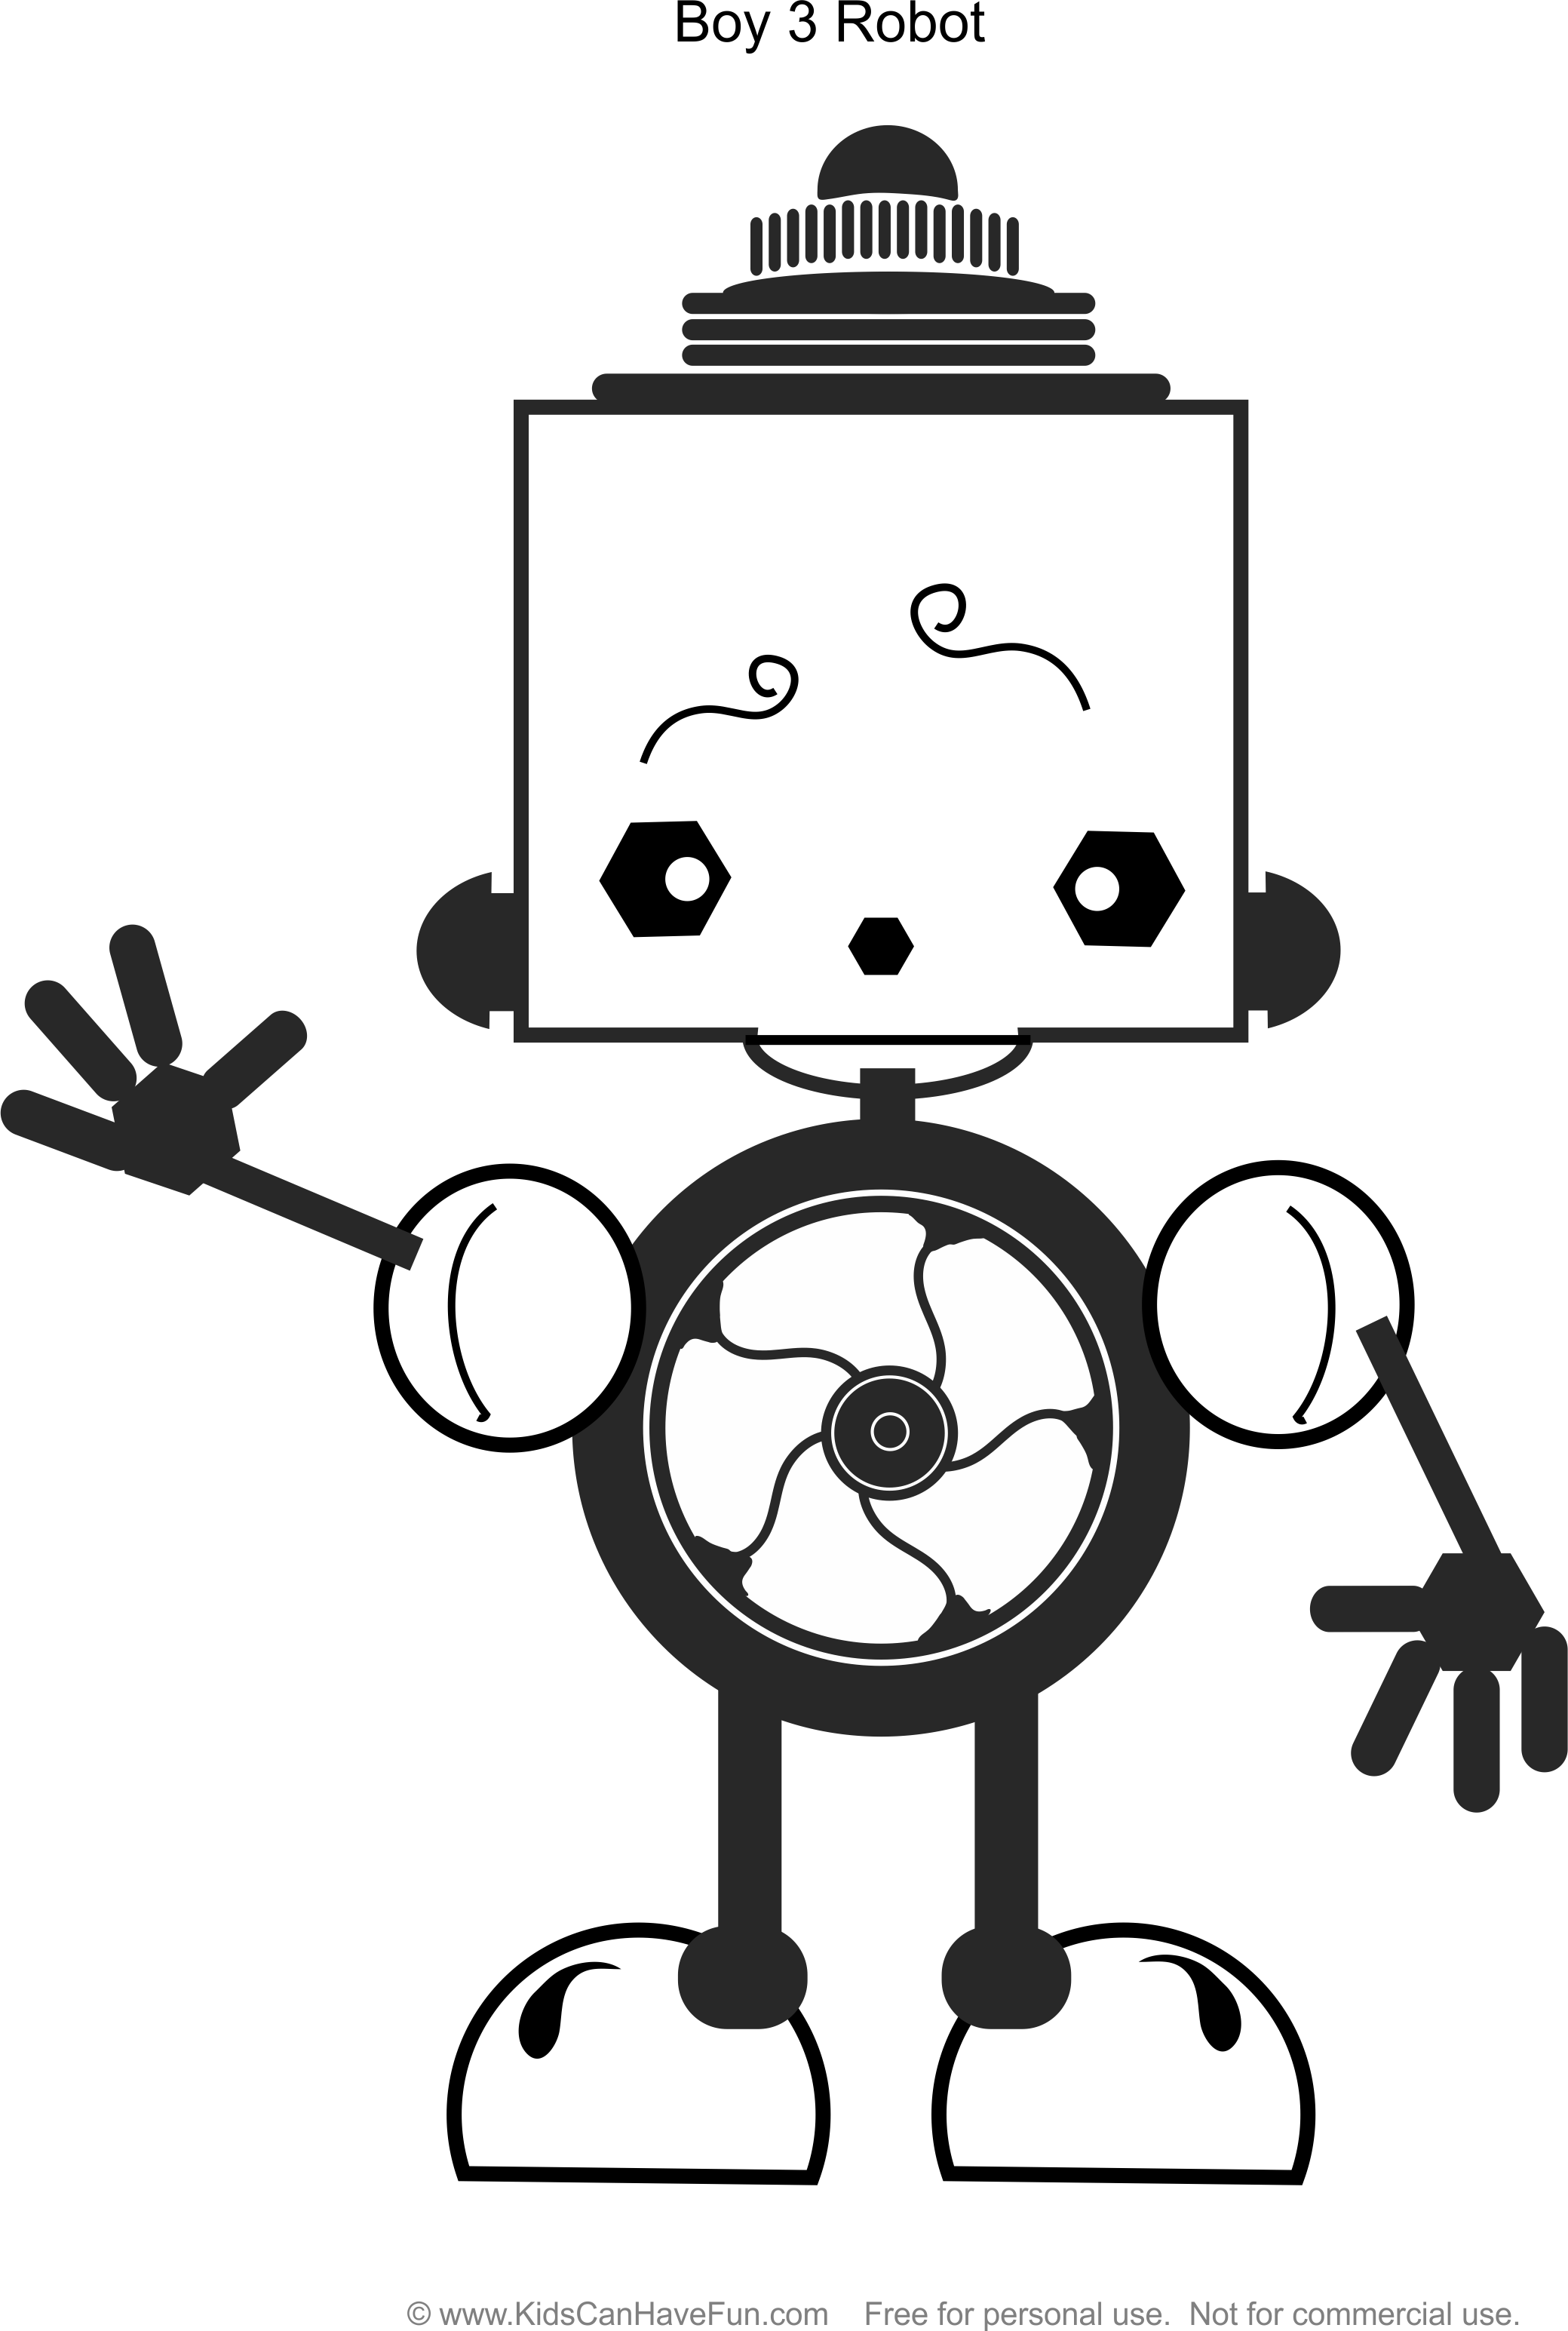 robot boy 3 coloring page httpwwwkidscanhavefuncomrobot coloringhtm robot coloringbook